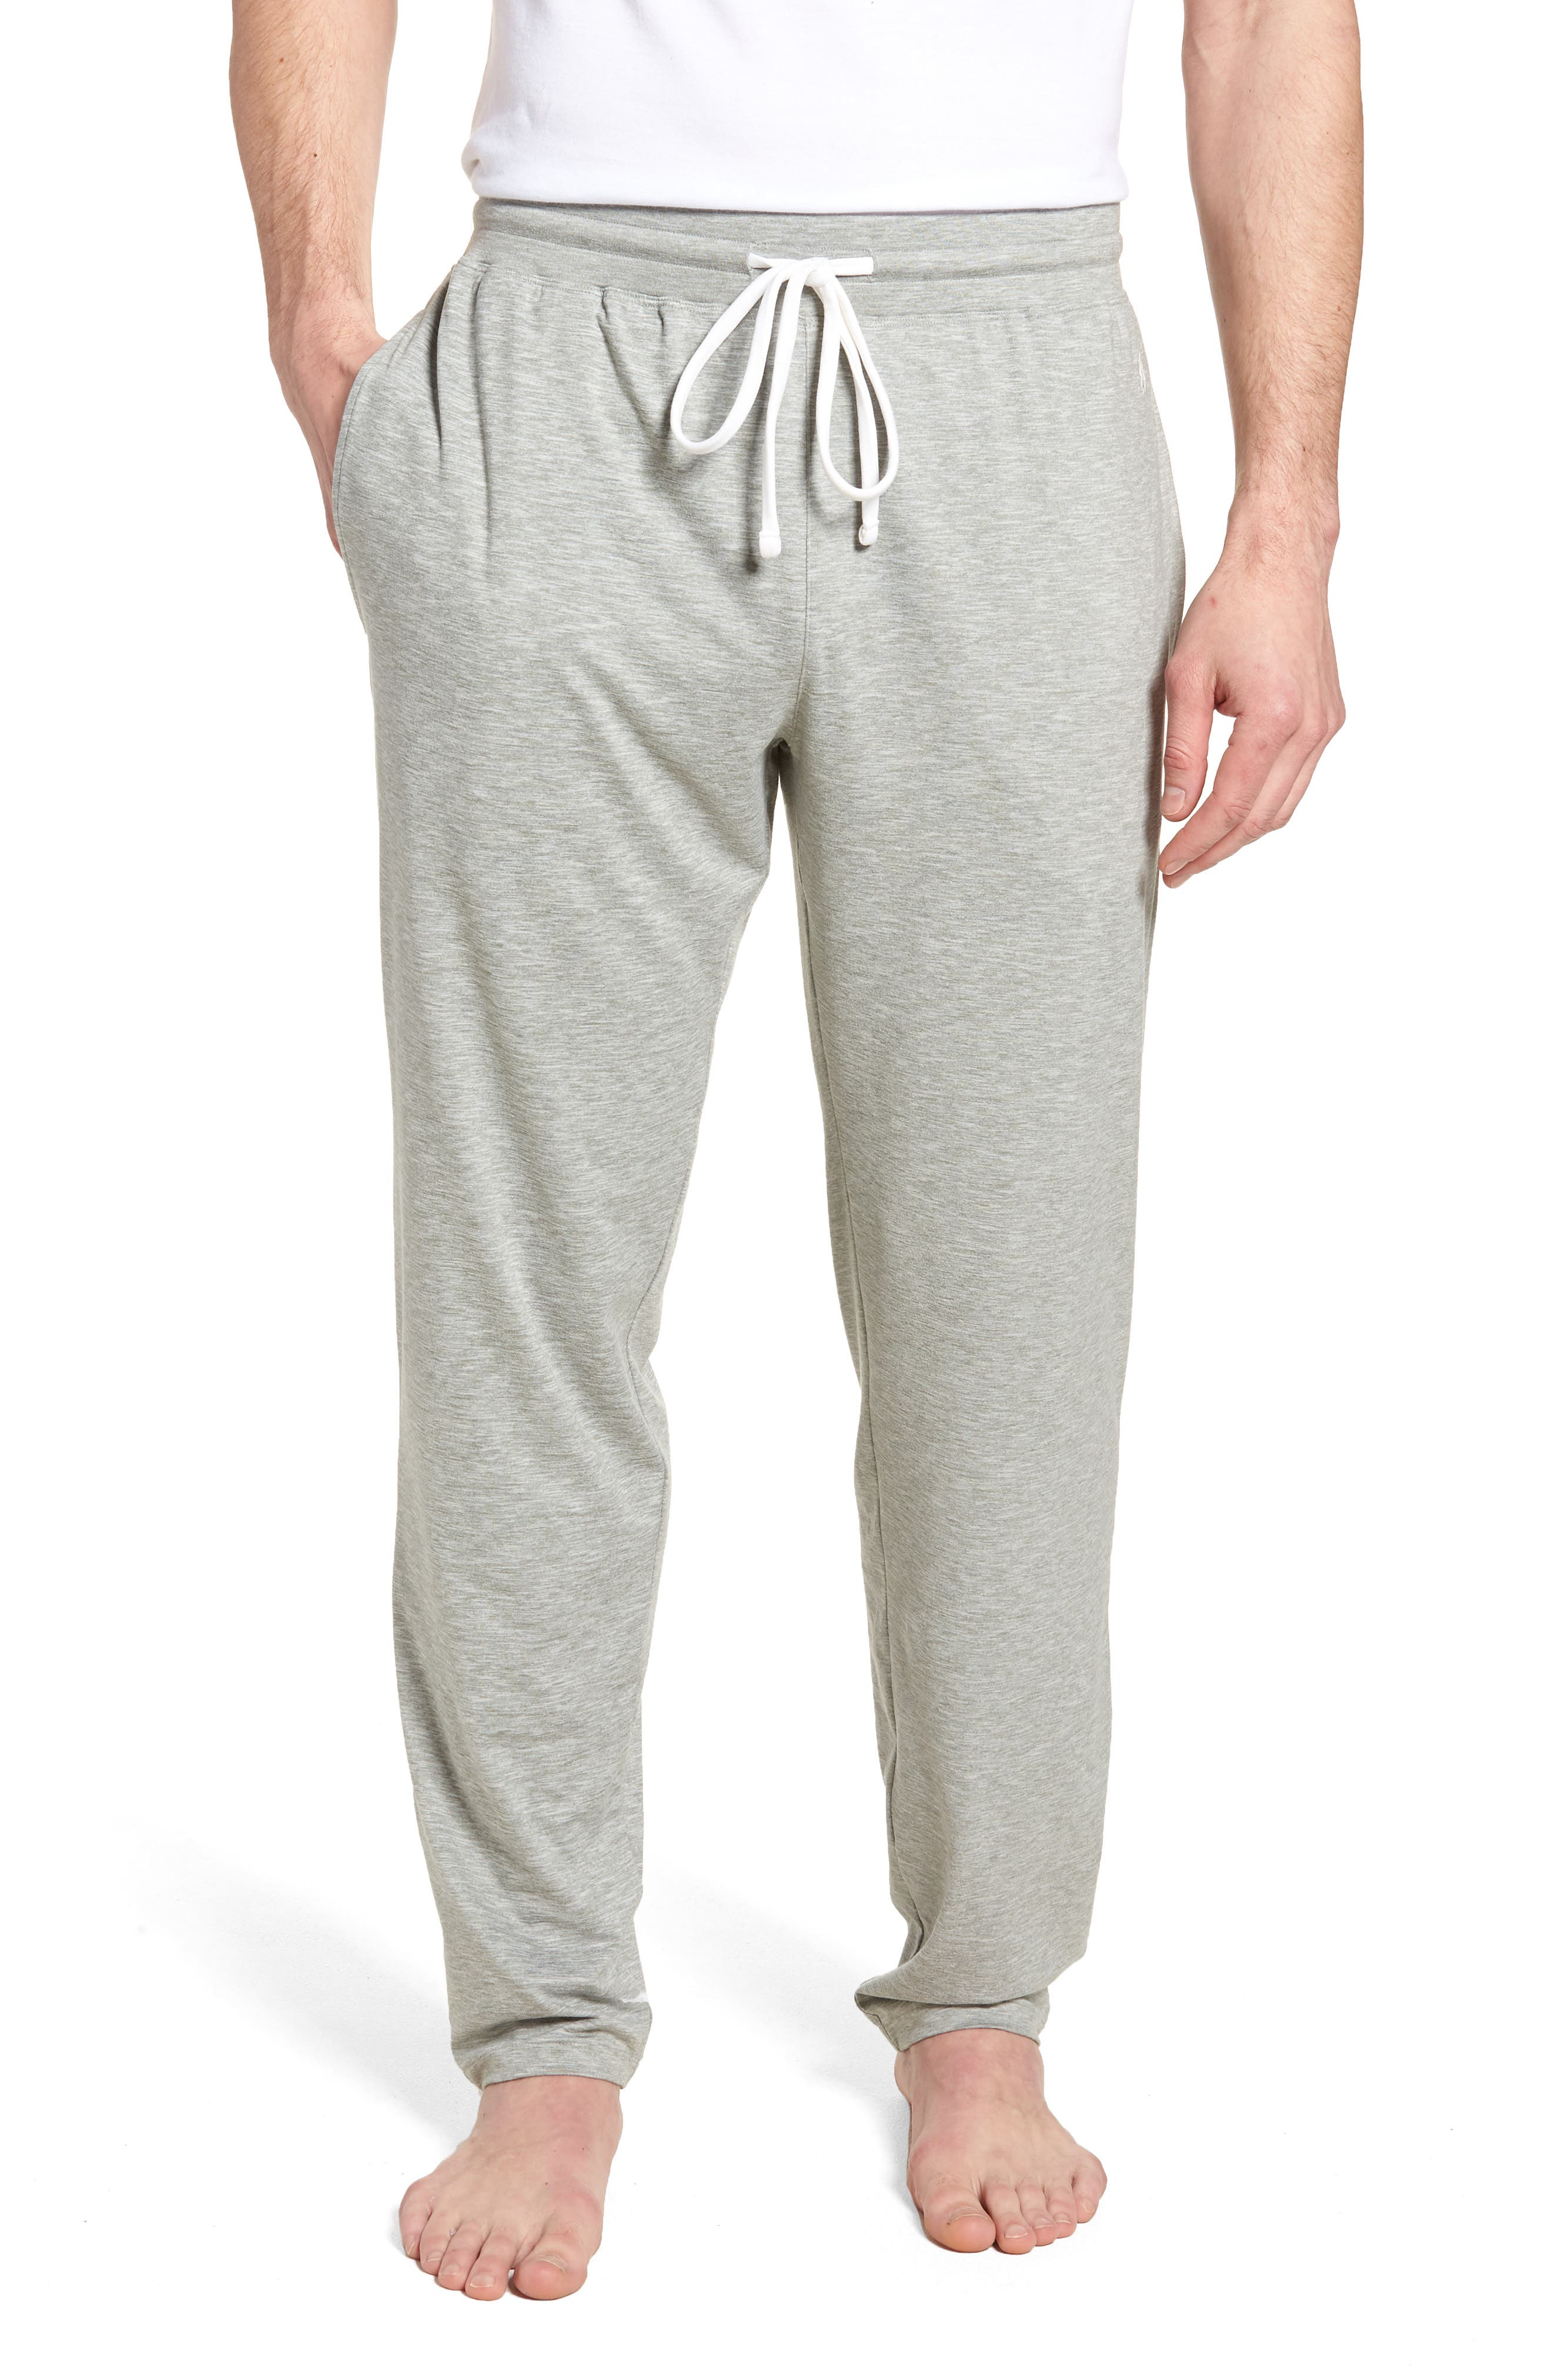 POLO RALPH LAUREN Therma Lounge Pants, Main, color, 033